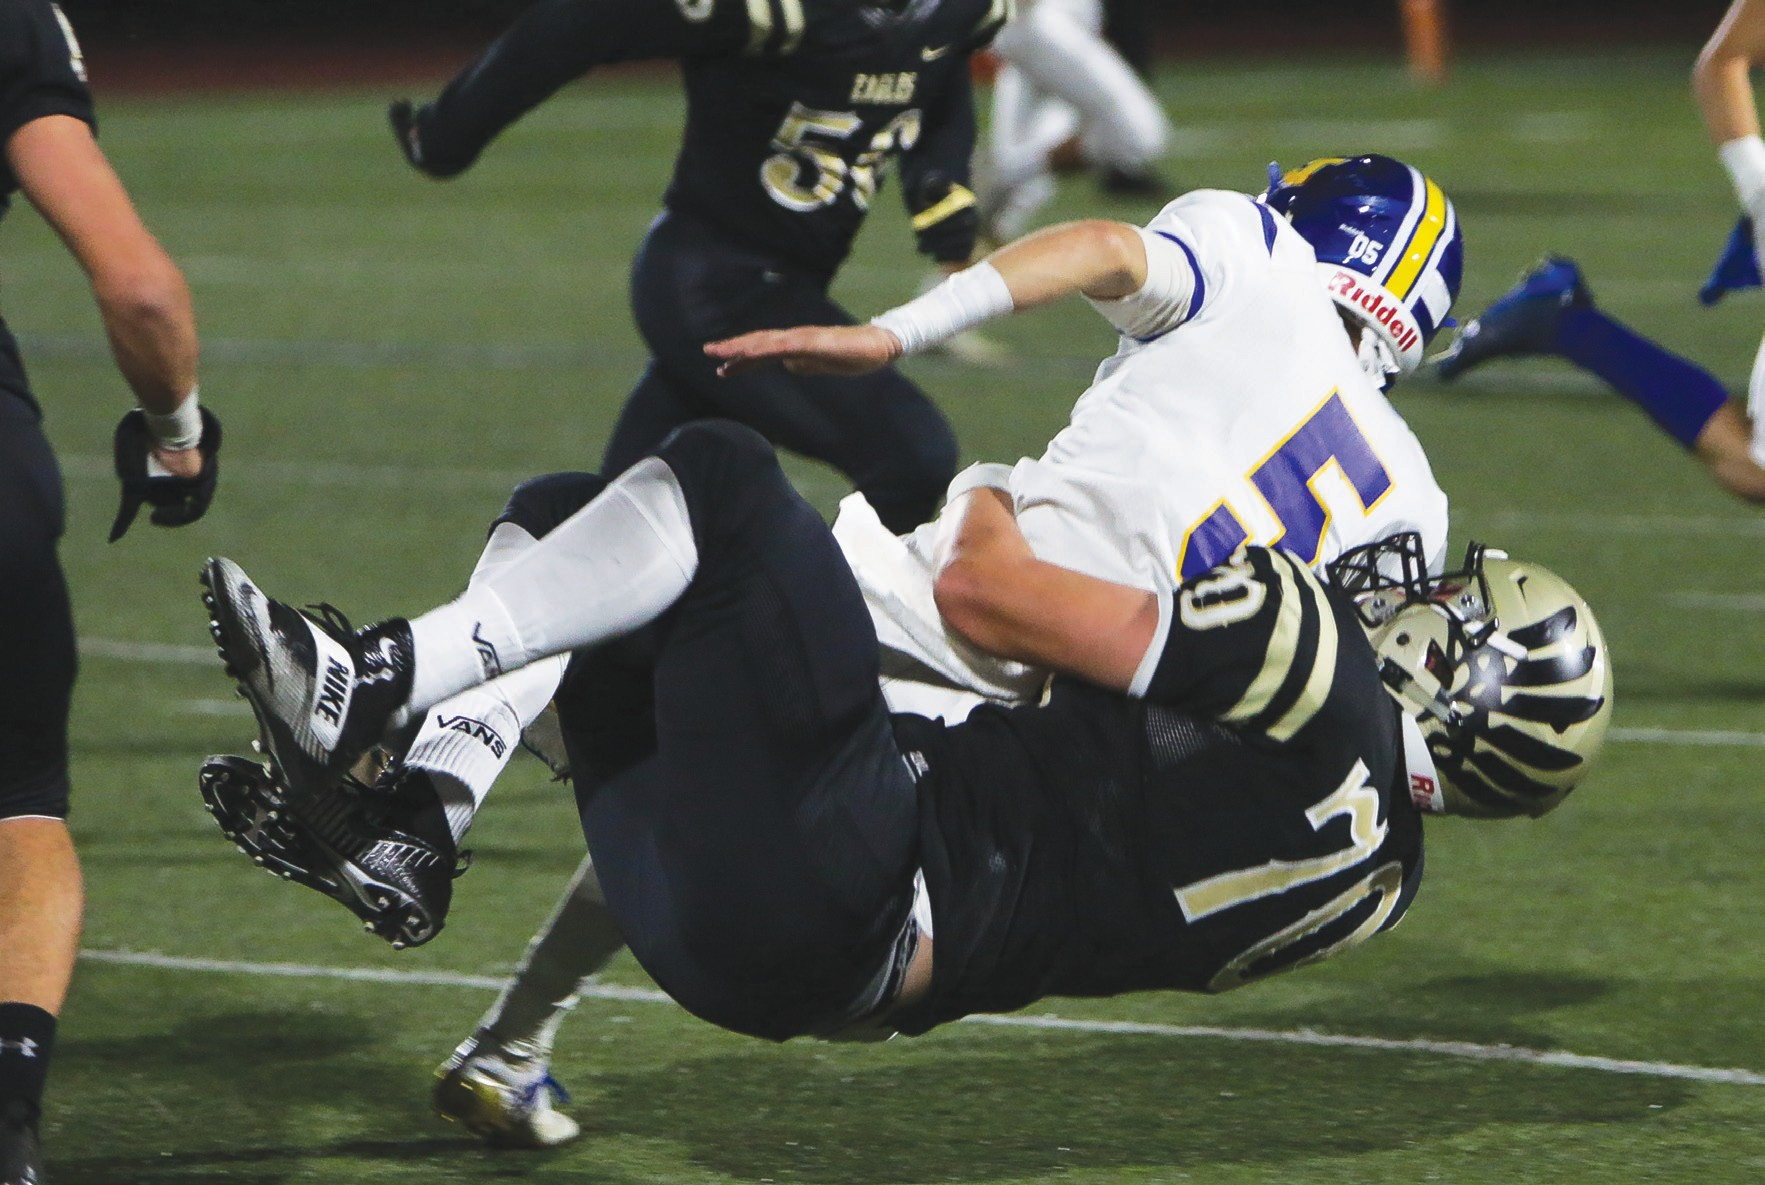 FREE FALLIN'—Oak Park High's Hunter Lee, No. 70, tackles Nordhoff's Korey Stevens during the Eagles' 22-18 win at homecoming on Oct. 6. Lee is a Division I prospect with multiple scholarship offers. BOBBY CURTIS/Acorn Newspapers